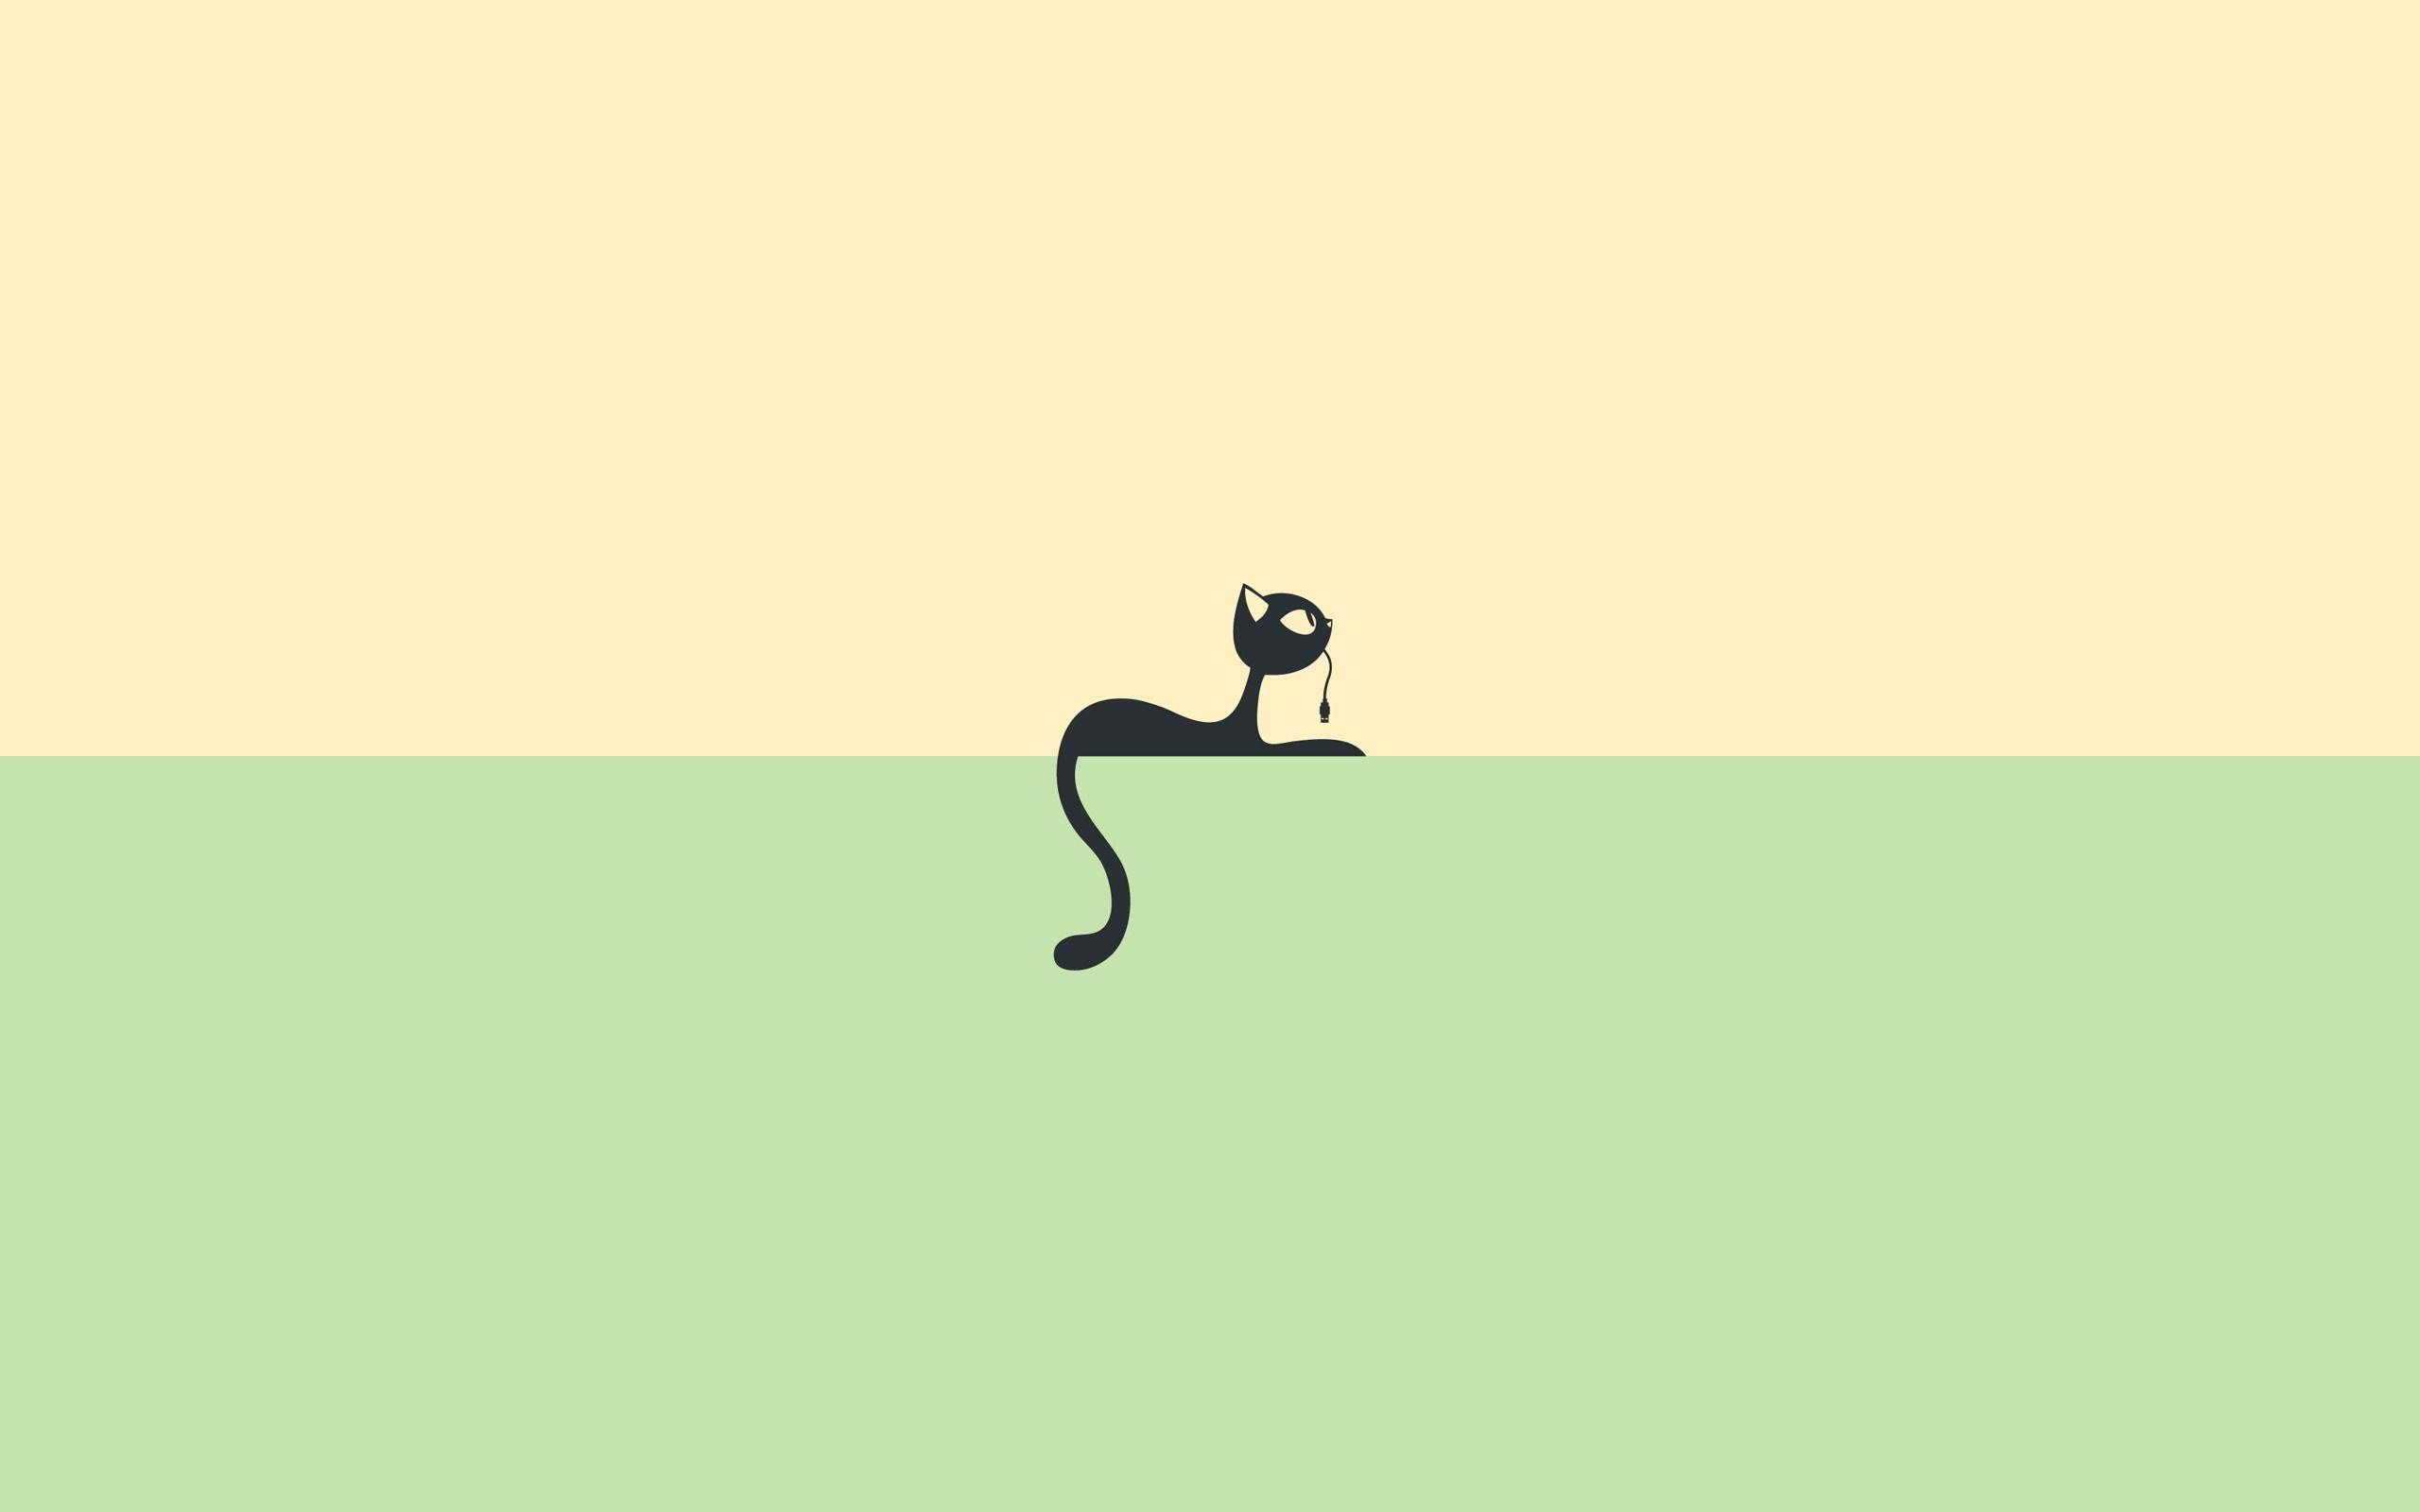 Cartoon cat wallpapers wallpaper cave for Art minimal facebook